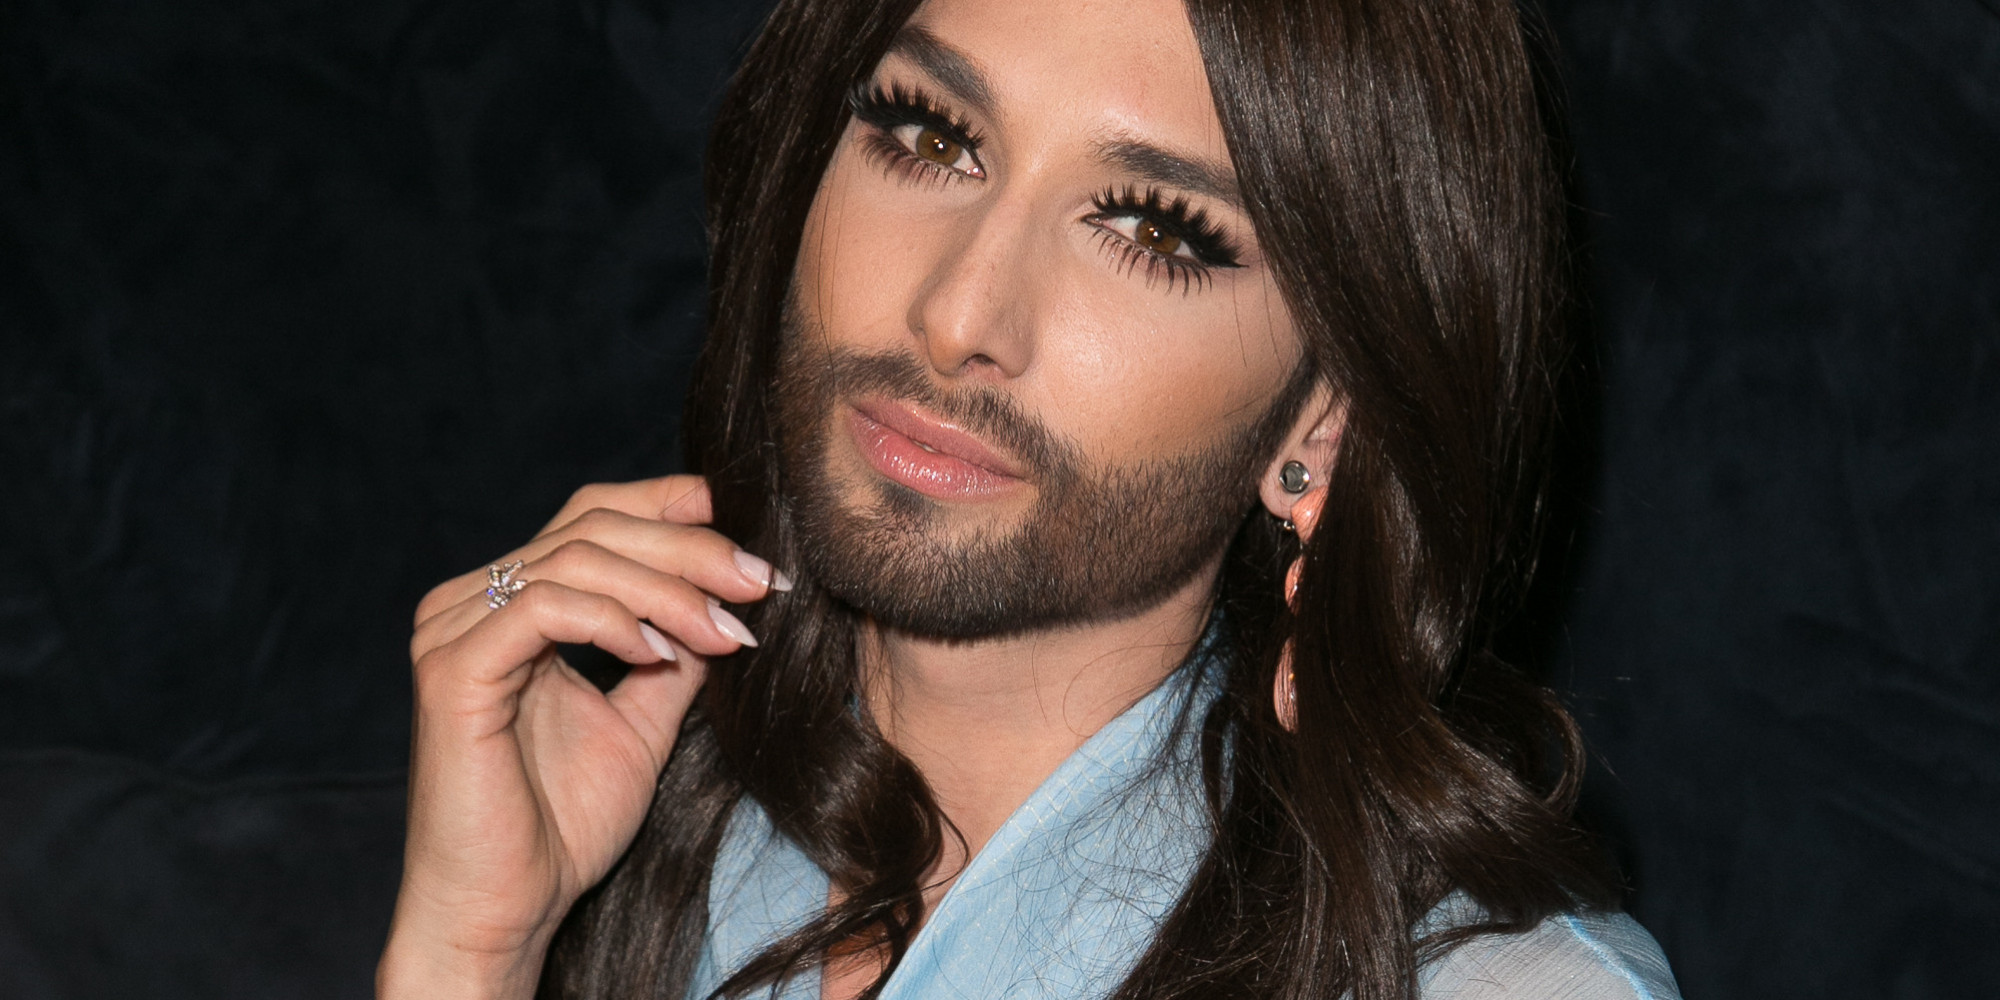 Eurovision' Winner Conchita Wurst Doesn't Feel She's Done Enough ...